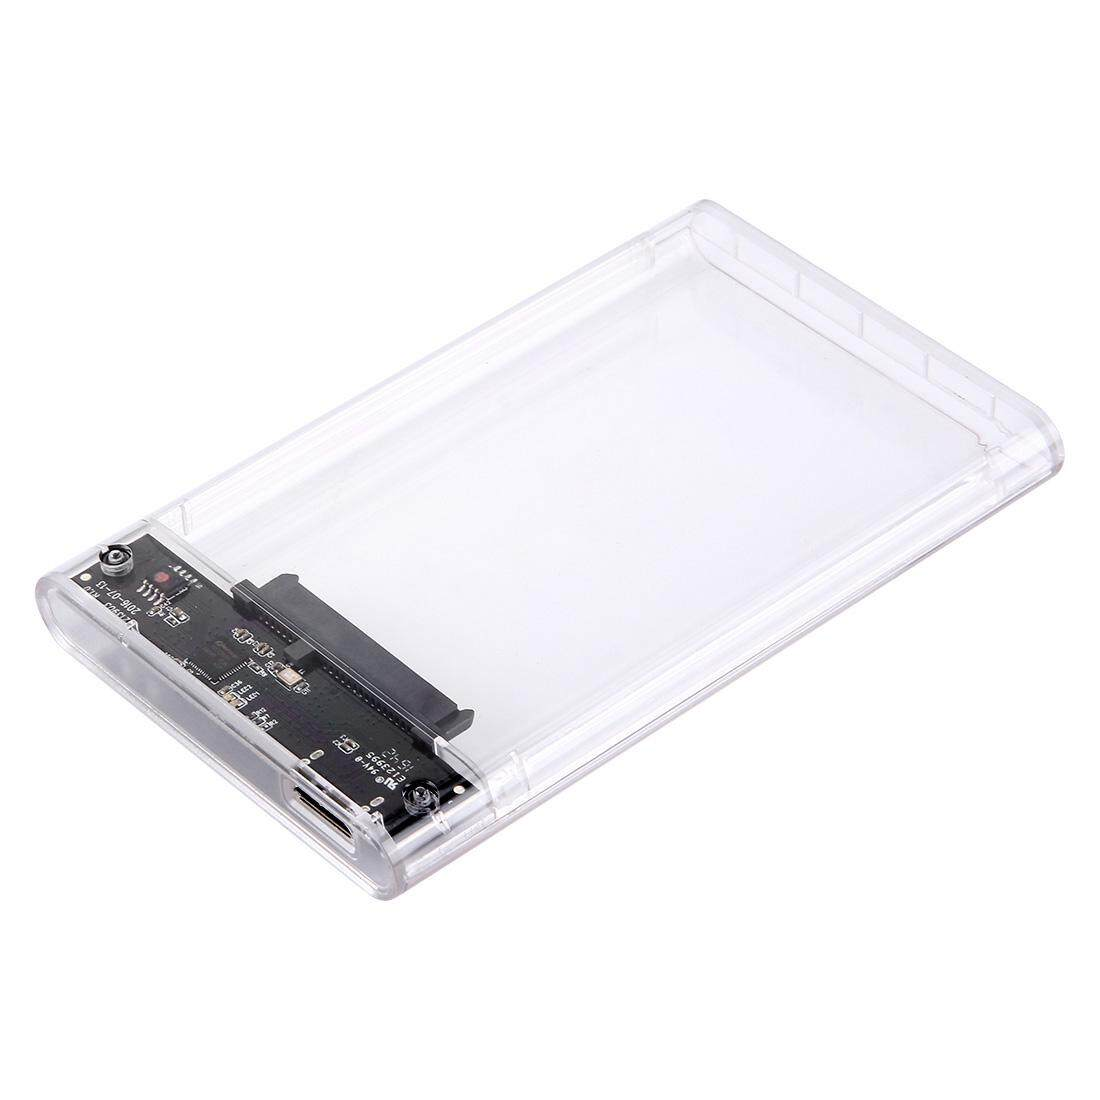 Buy Sell Cheapest Orico 3139u3 Transparent Best Quality Product Hdd 2139u3 Cr Usb30 External Hard Disk Box Storage Case For 95